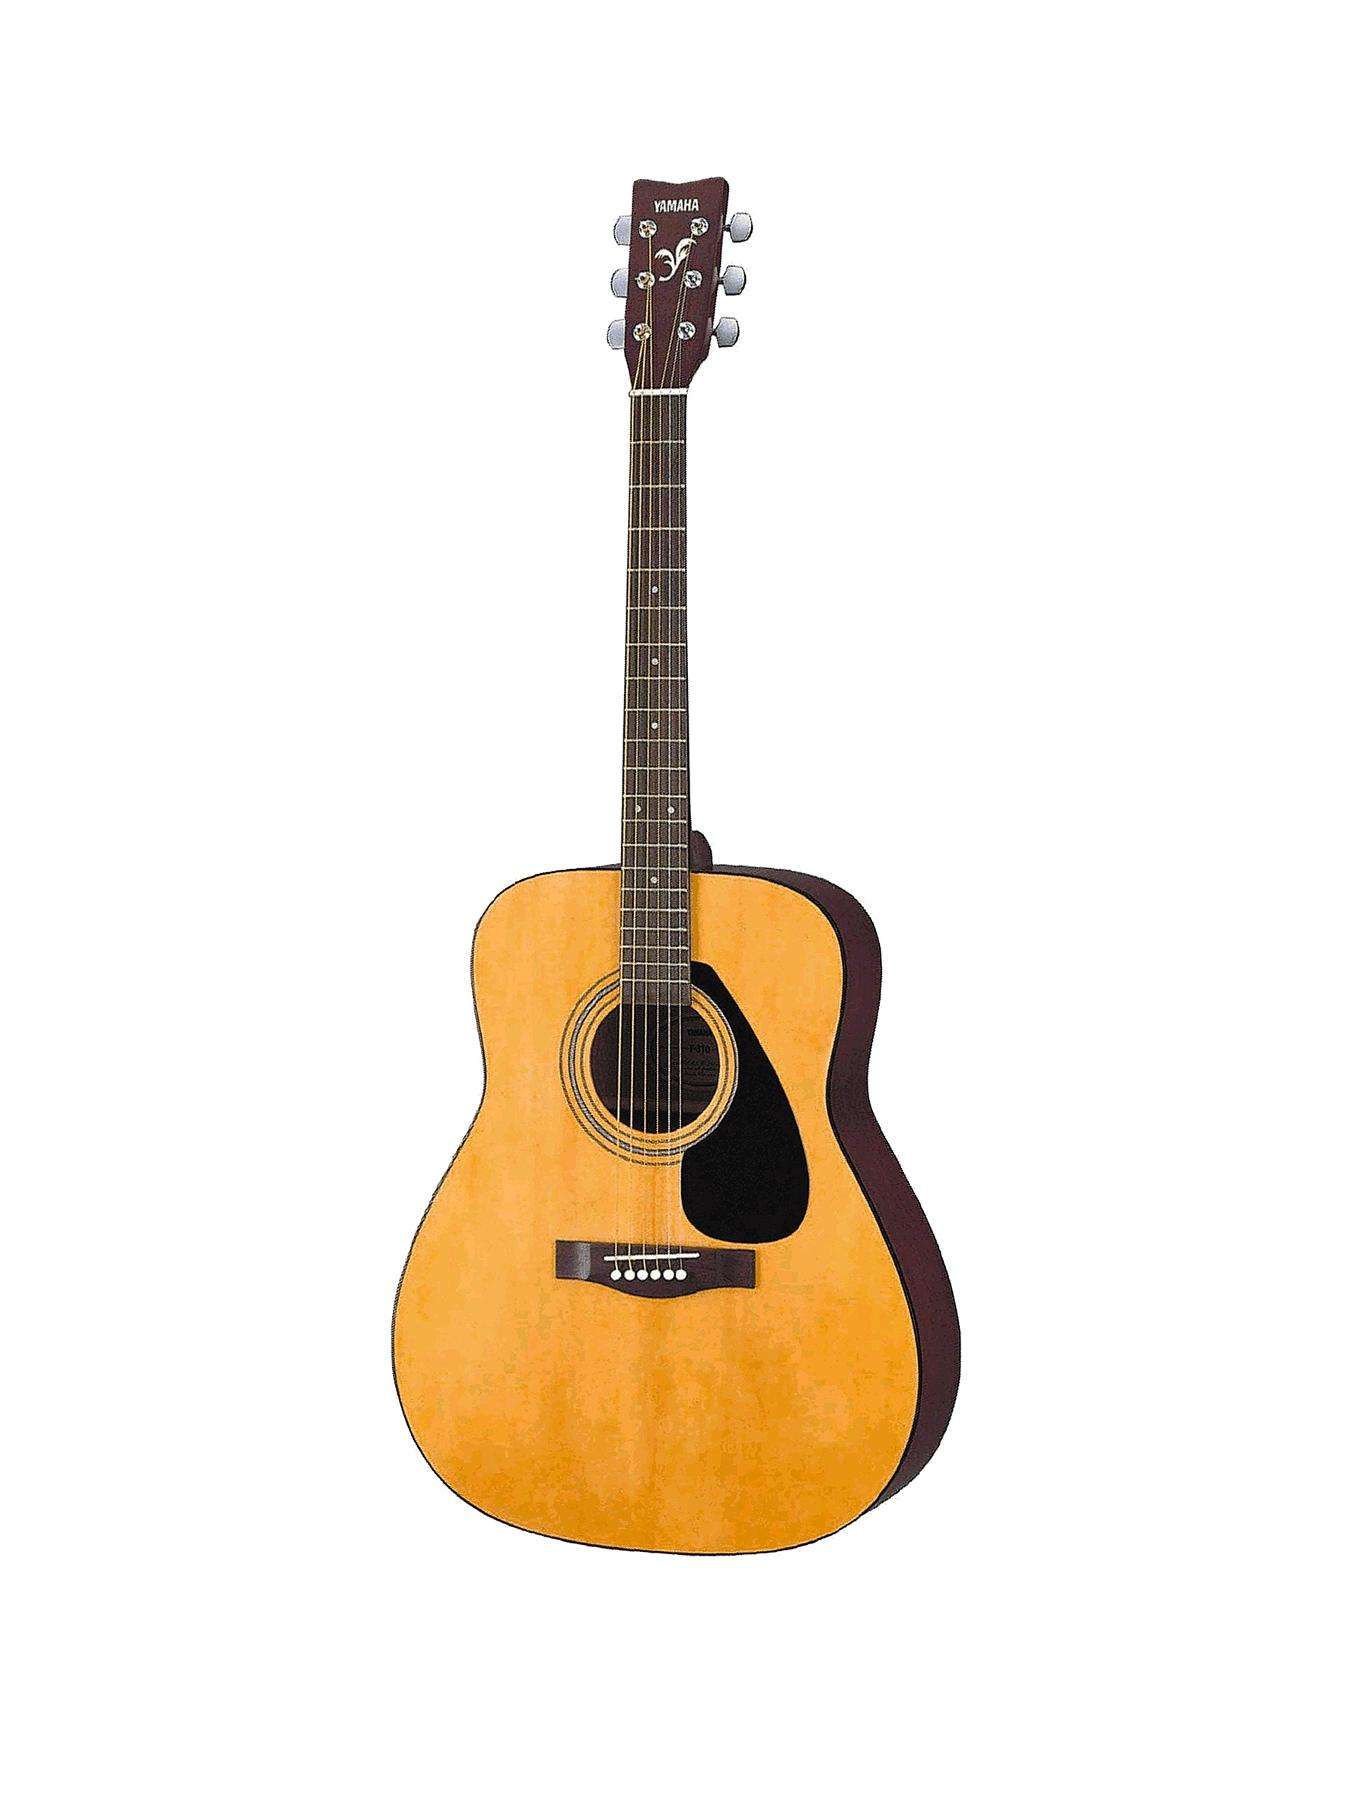 Yamaha F310 Acoustic Guitar Musical Instrument